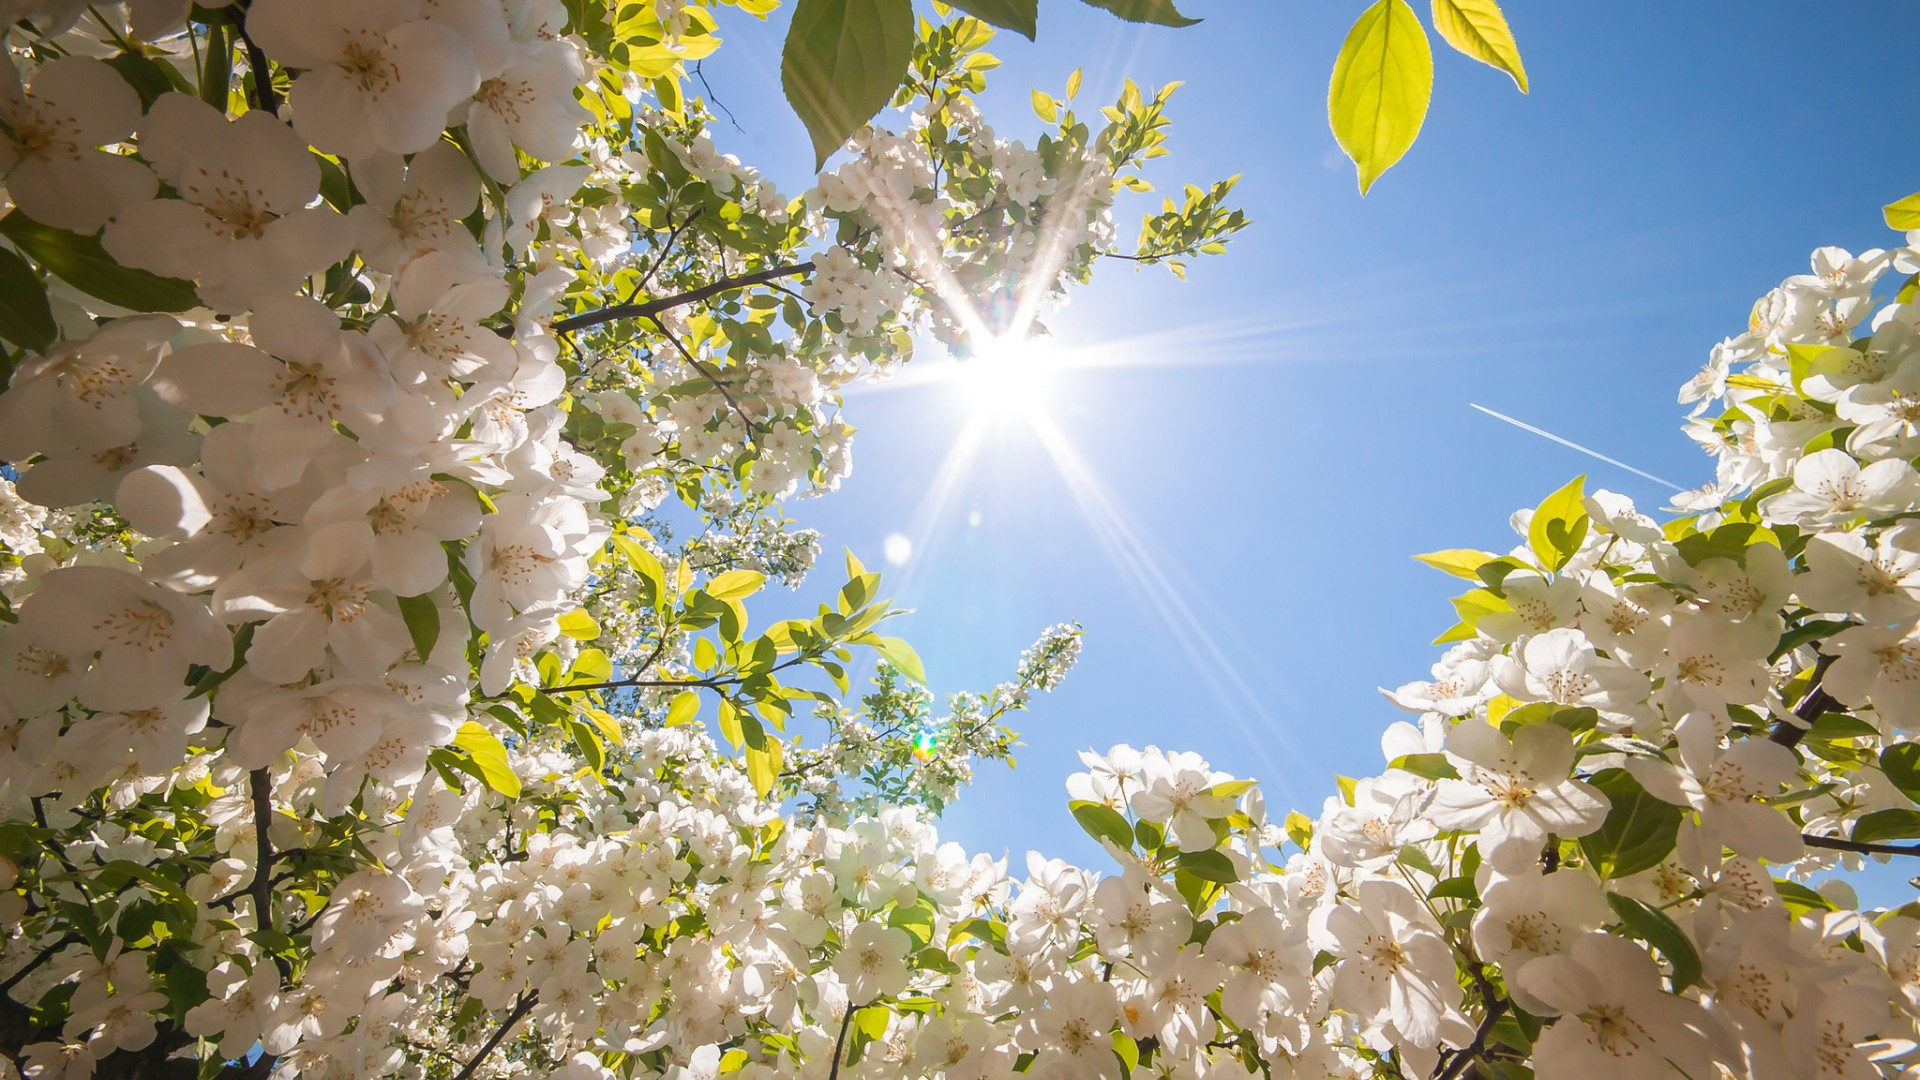 Spring Hd Background